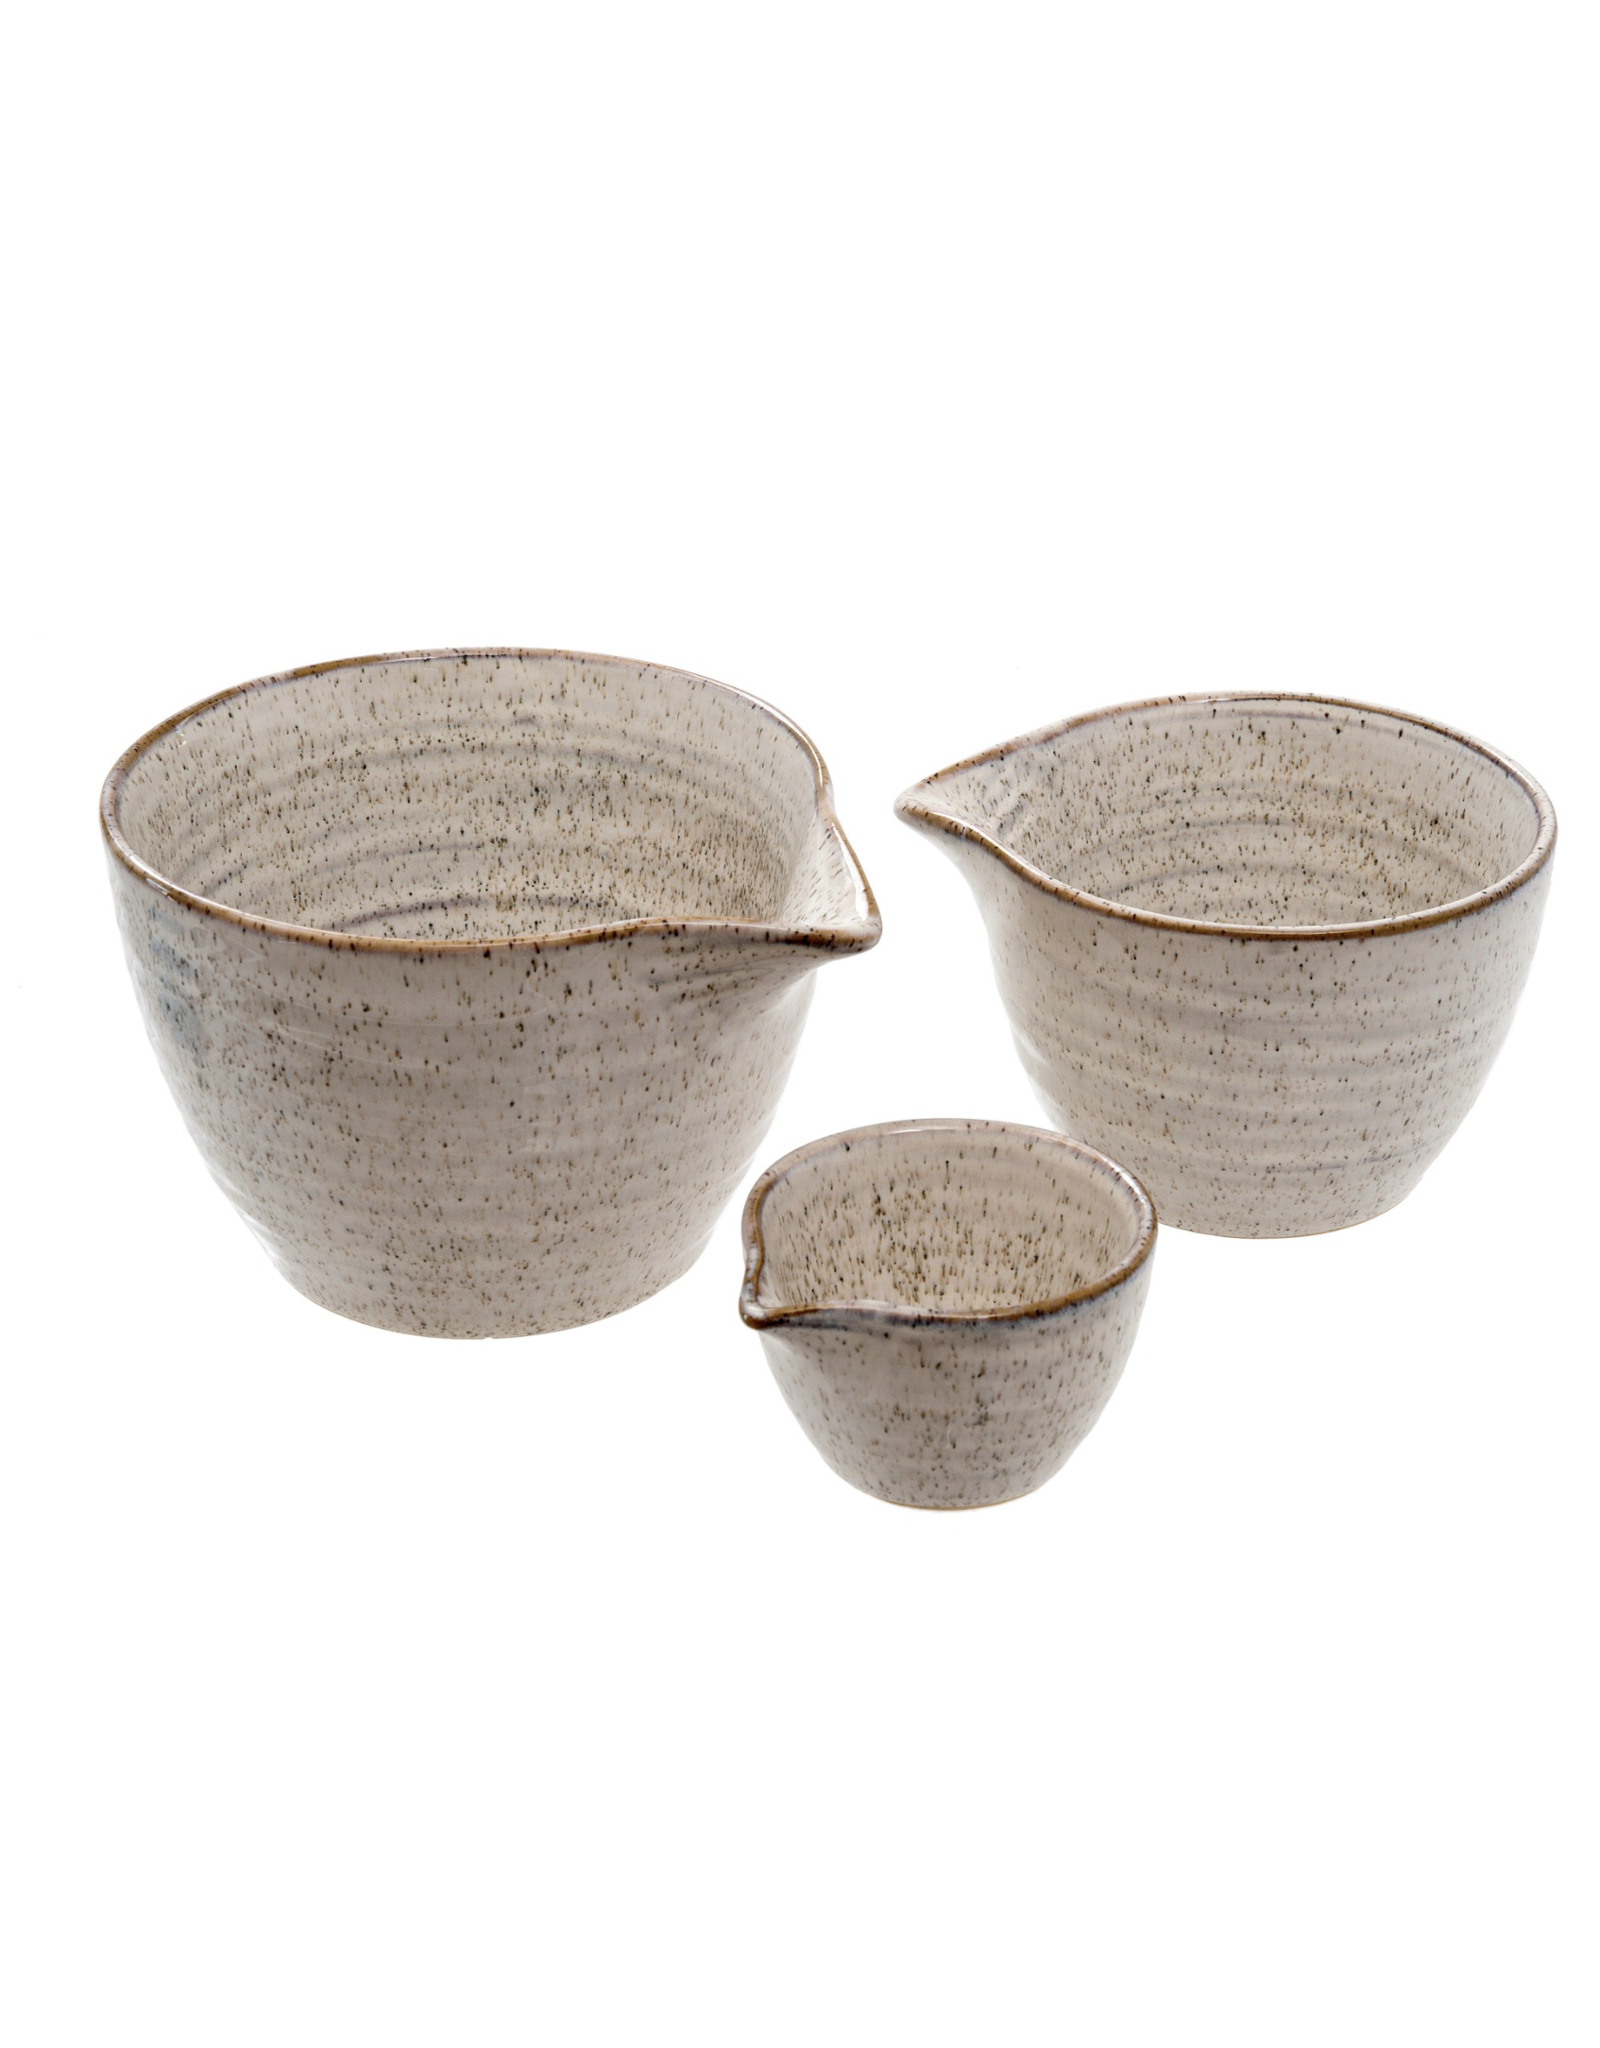 Galiano Spouted Bowls - S/3